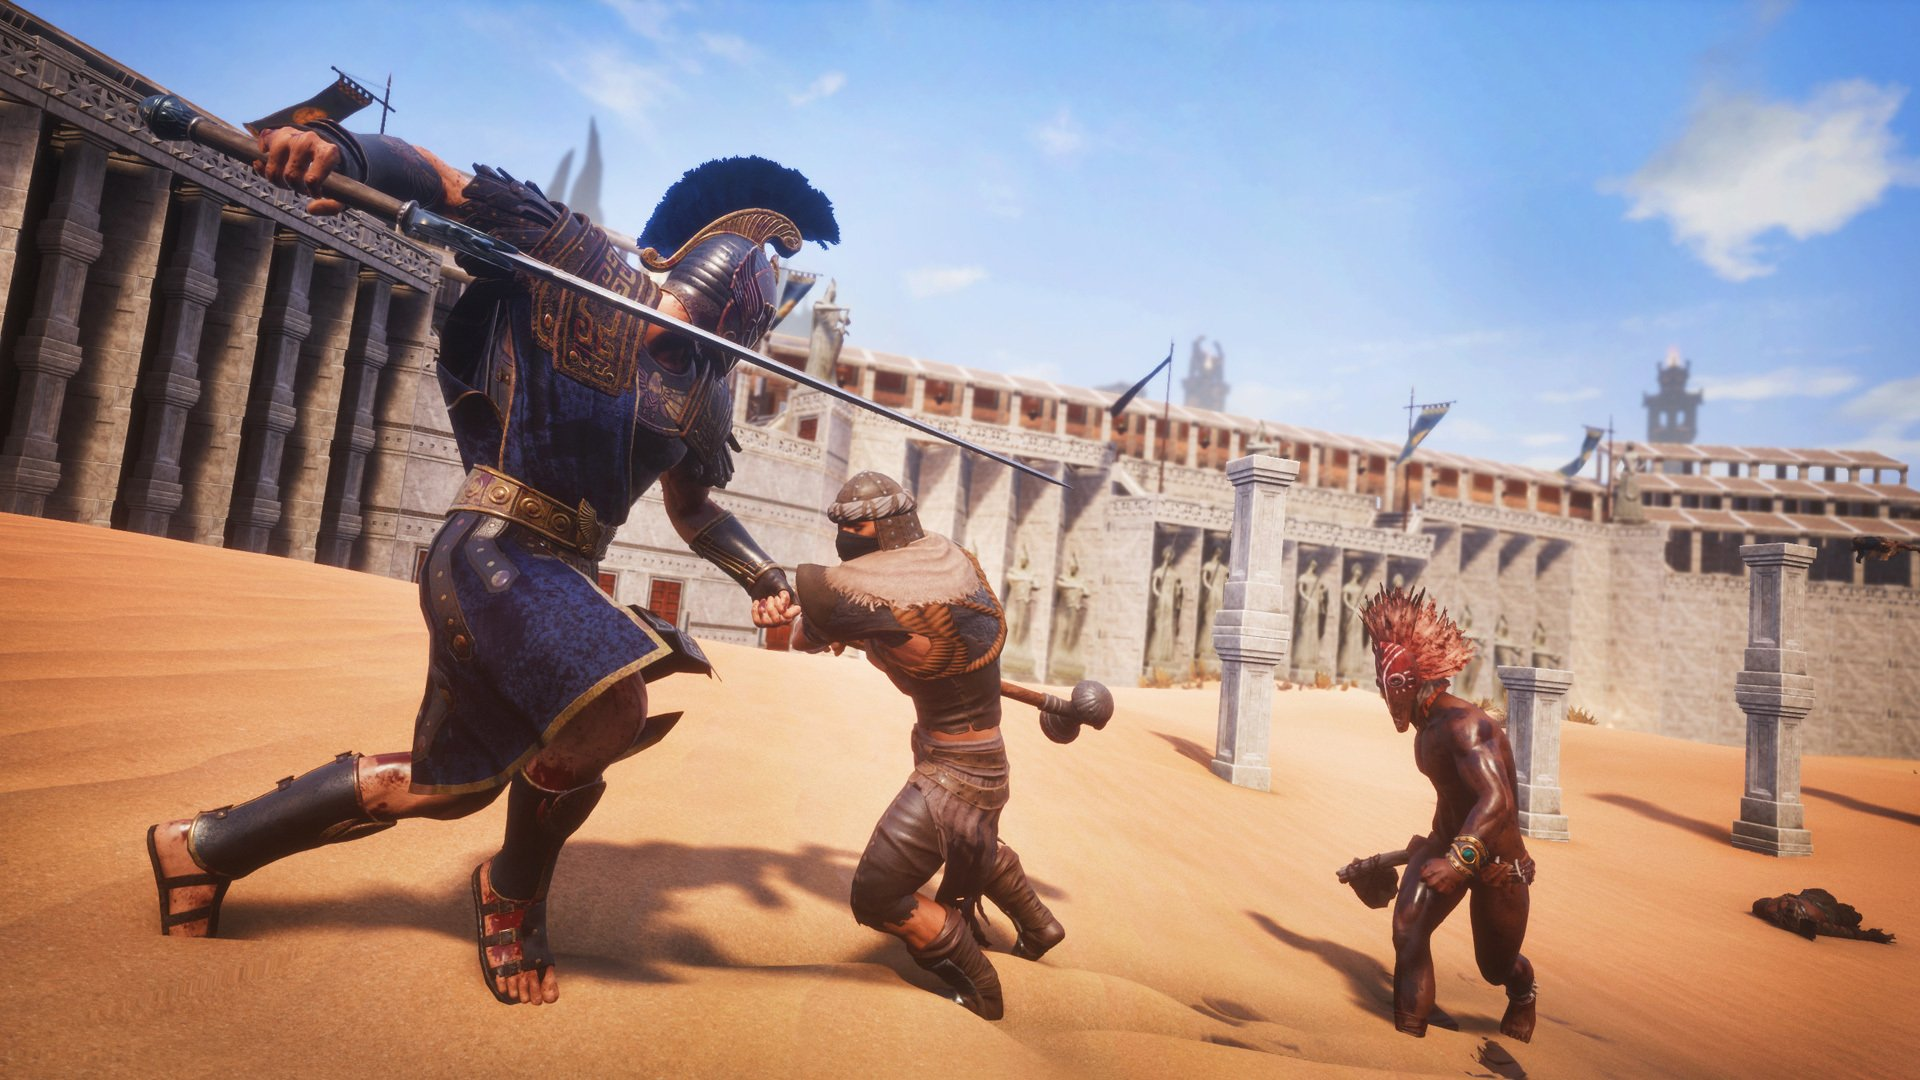 Conan Exiles New DLC, Jewel of the West, Launches Next Month